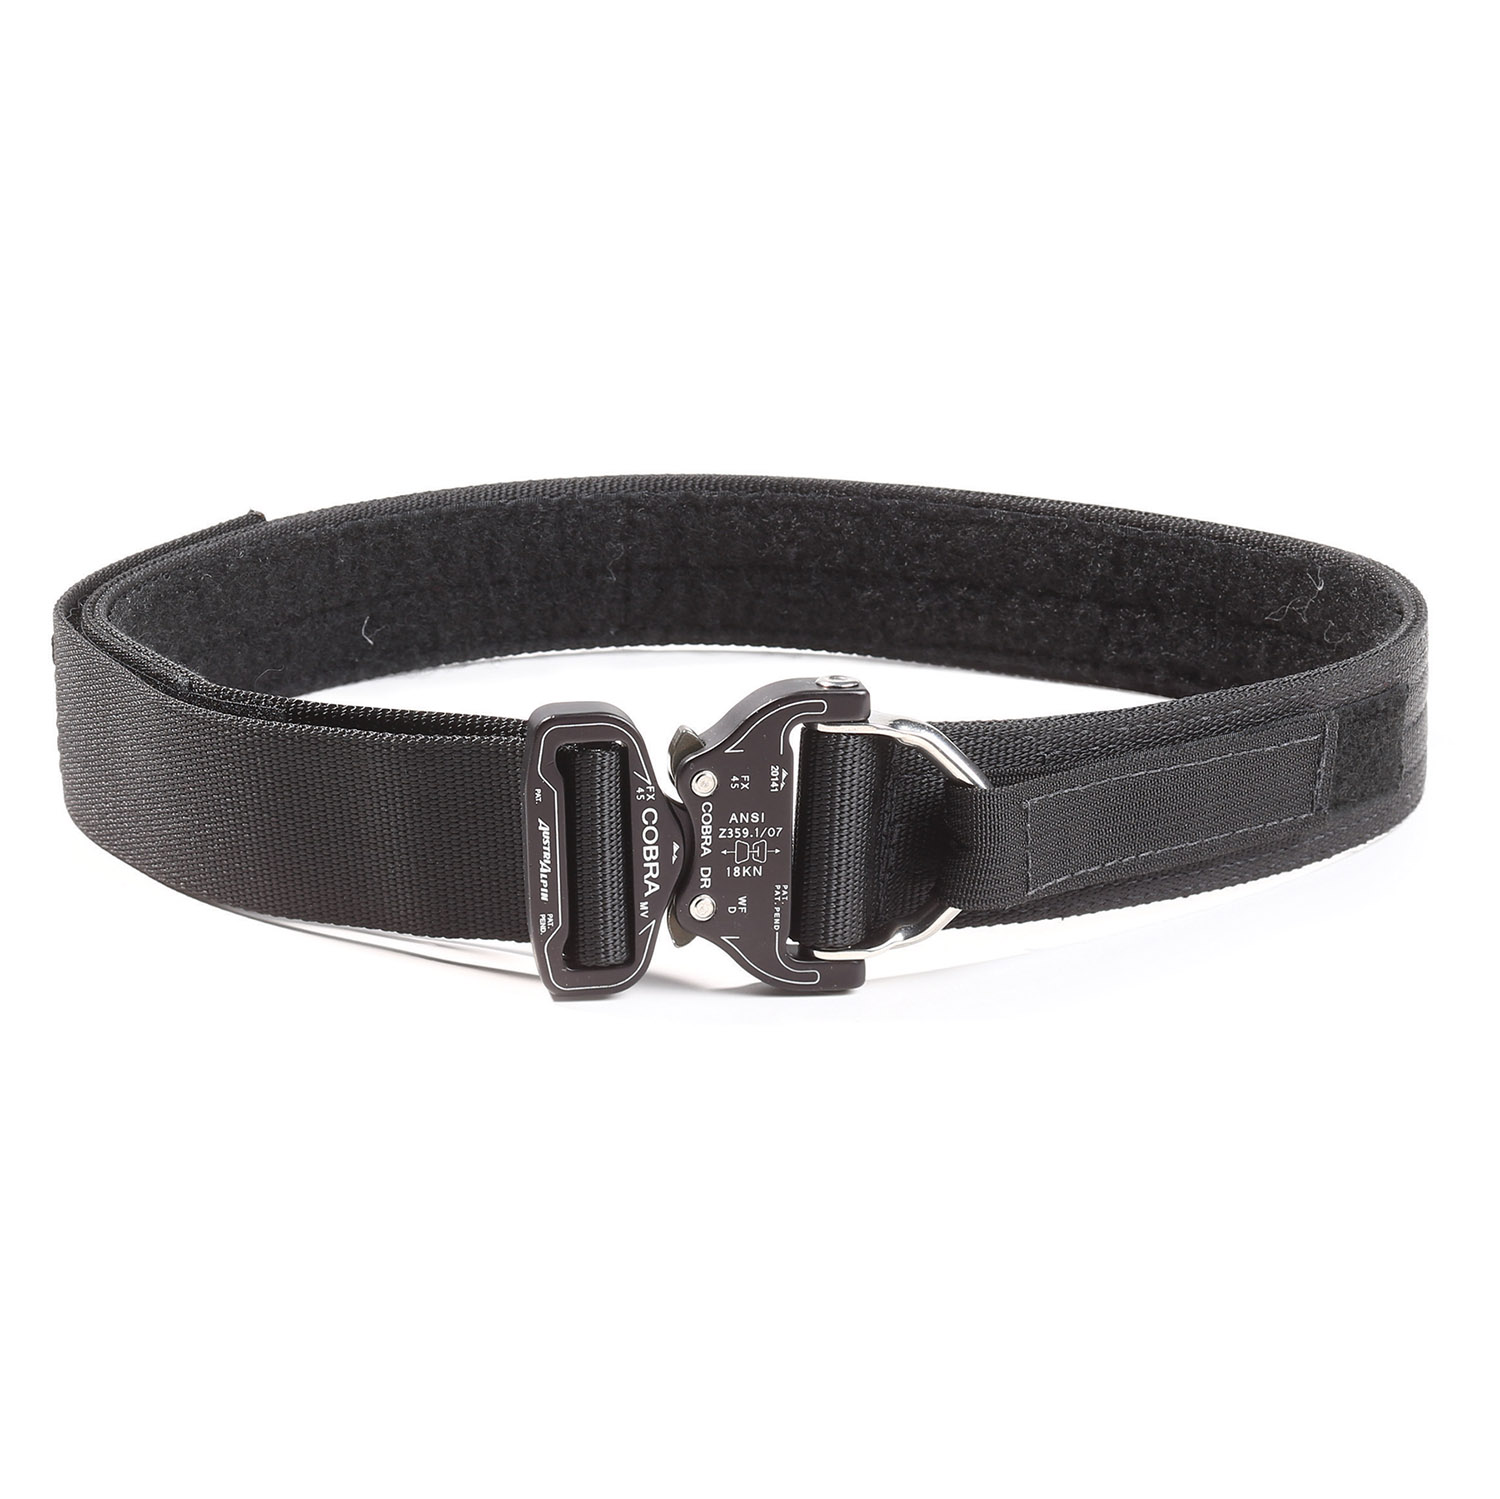 High Speed Gear Cobra Belt with Integrated D-Ring